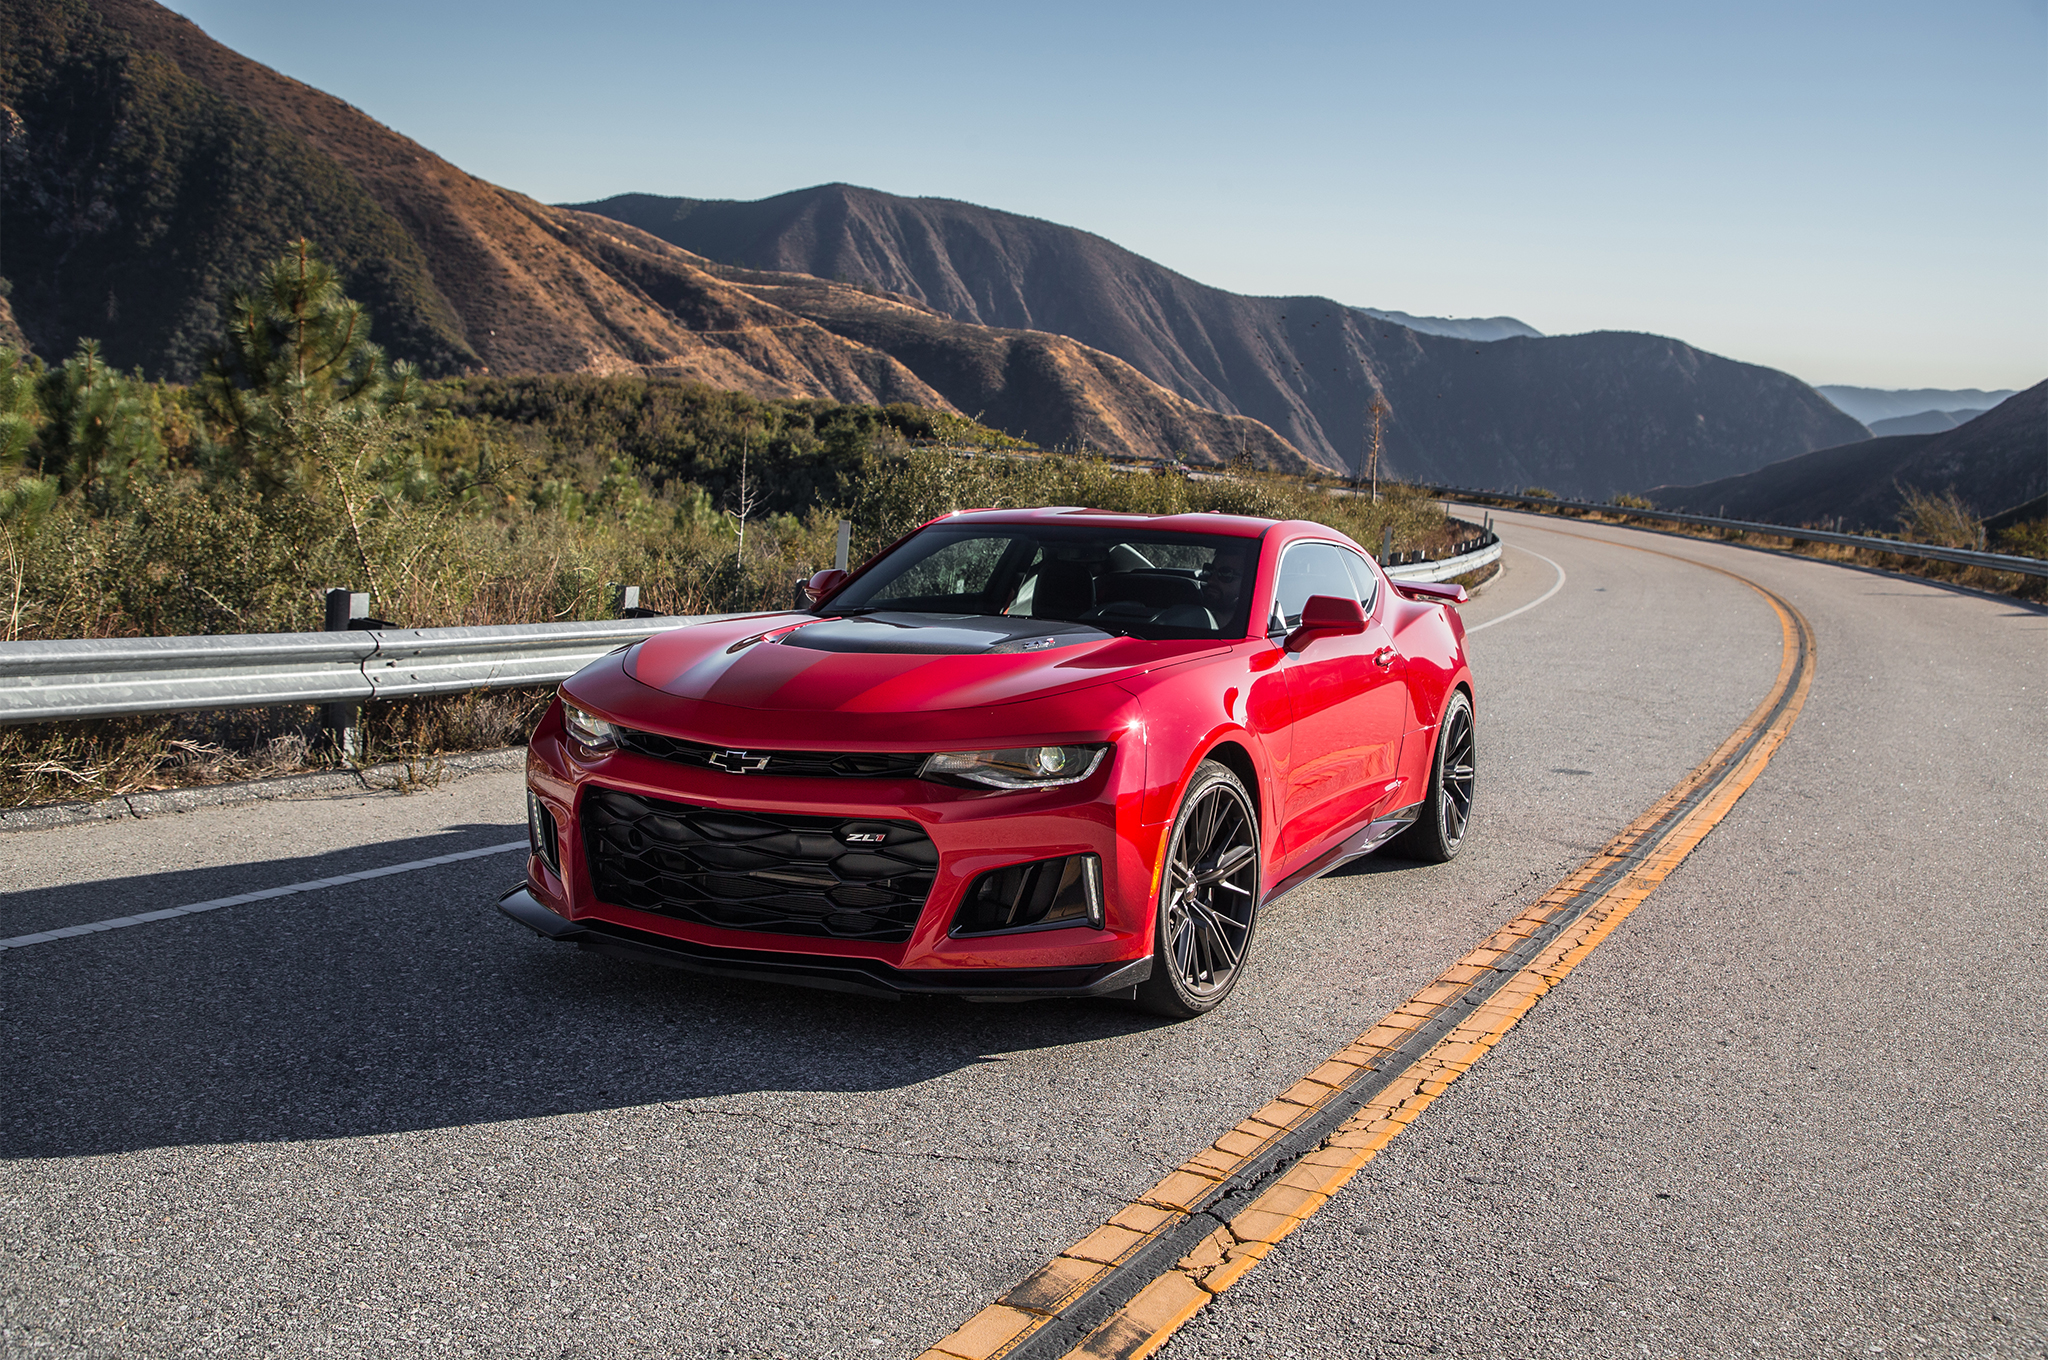 Car Ancestry2017 Chevrolet Camaro Zl1 Hit 200 Mph Car